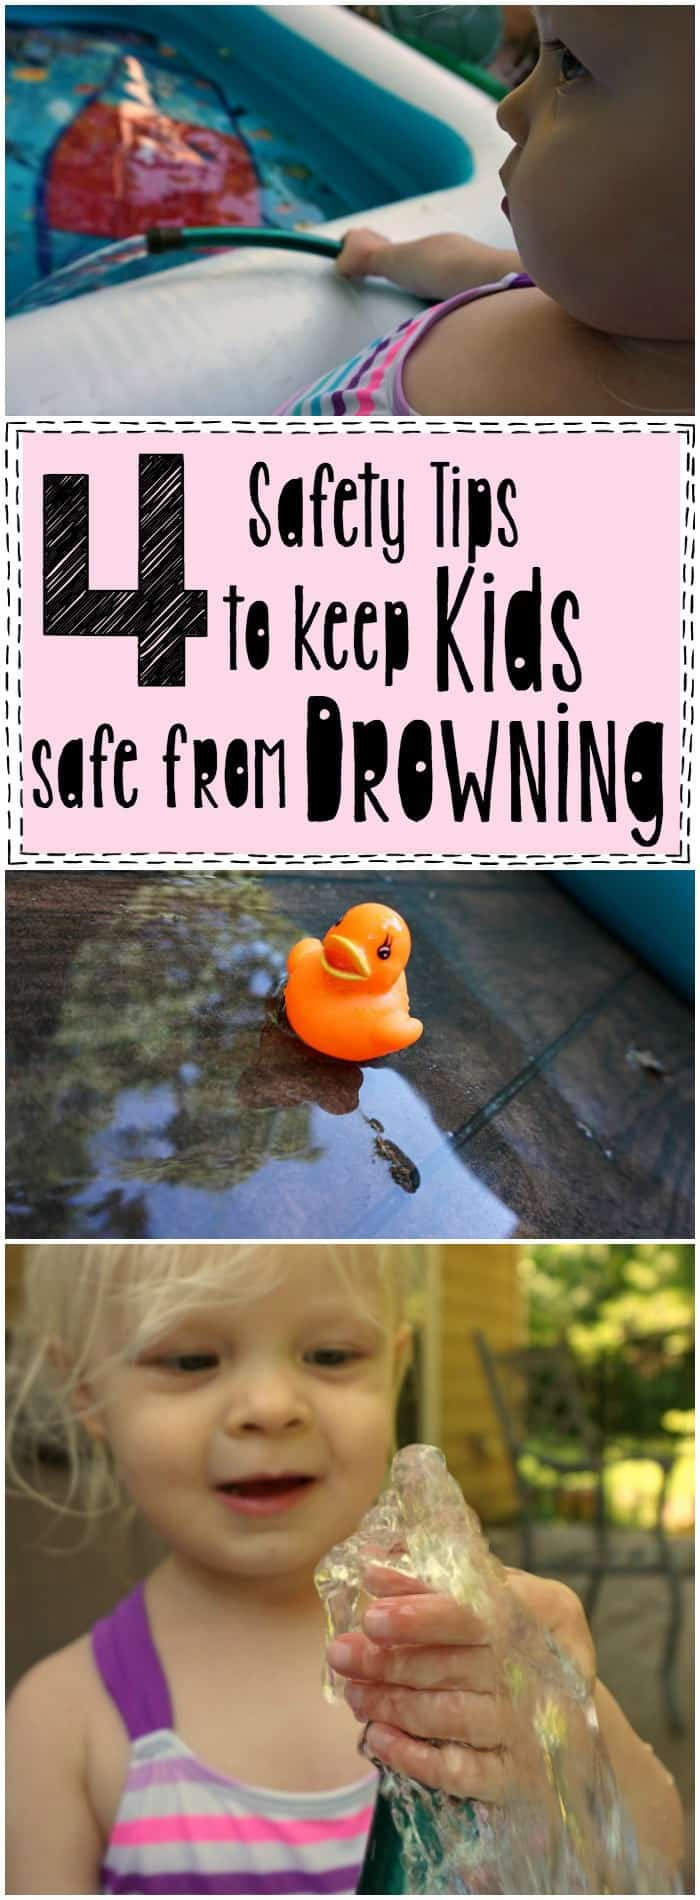 These 4 Safety Tips to Keep Kids Safe From Drowning are so easy to remember!